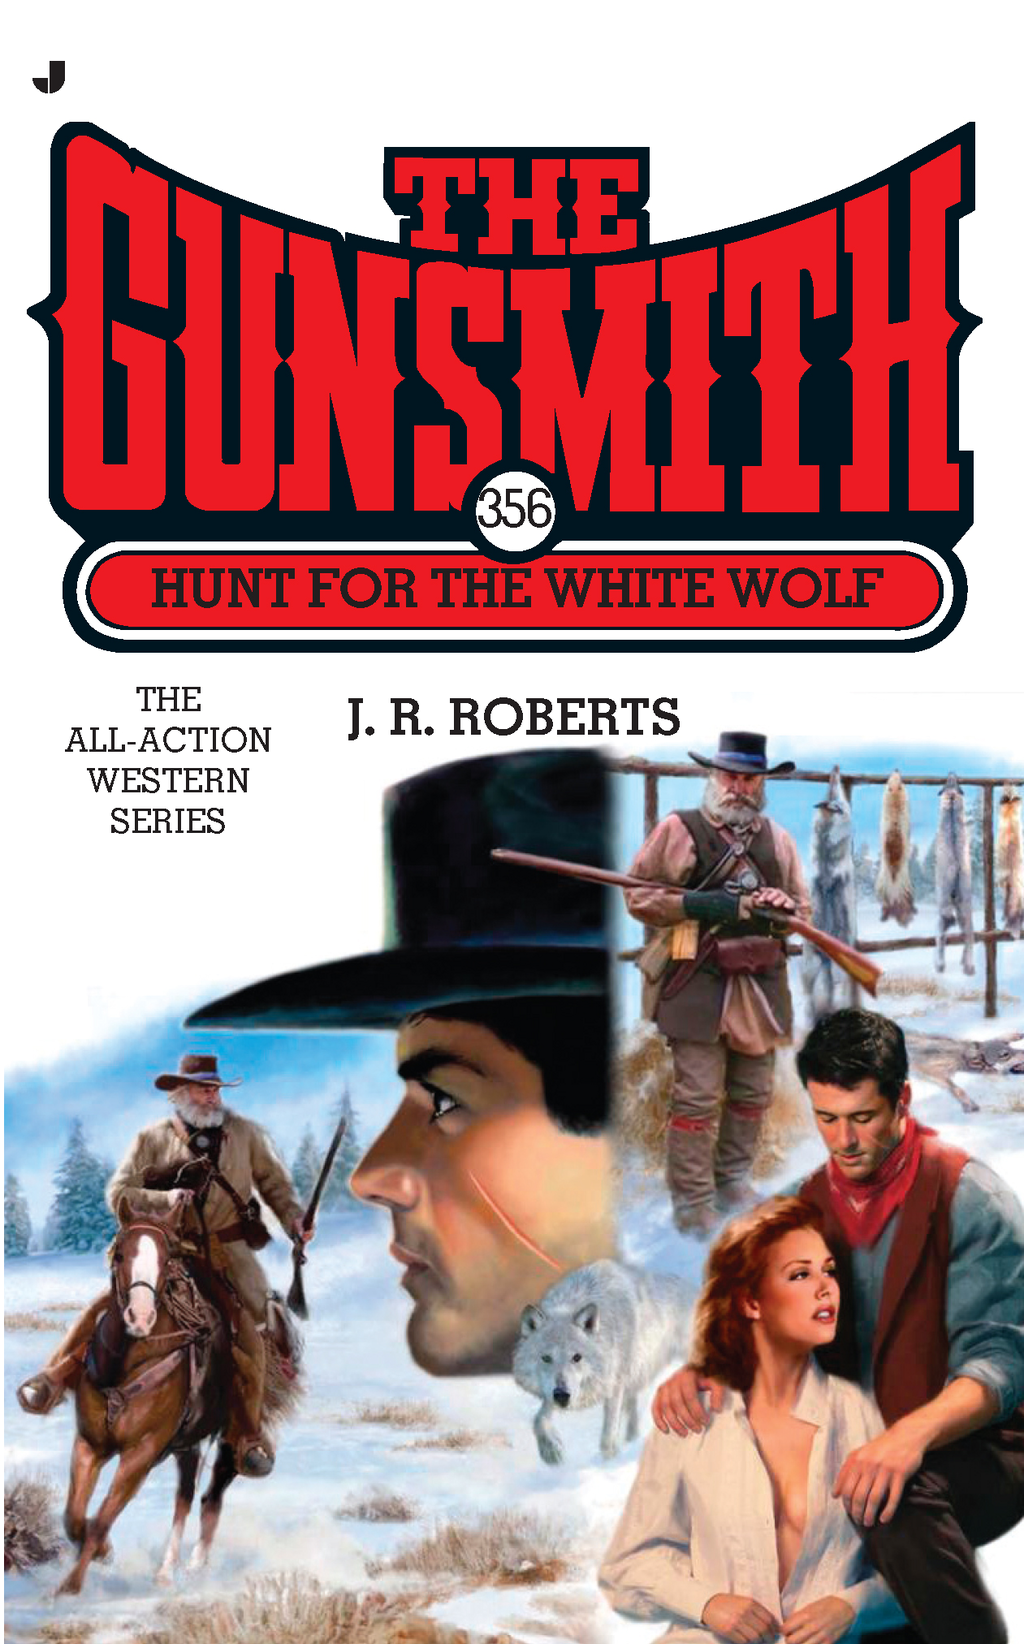 The Gunsmith #356: Hunt for the White Wolf By: J. R. Roberts